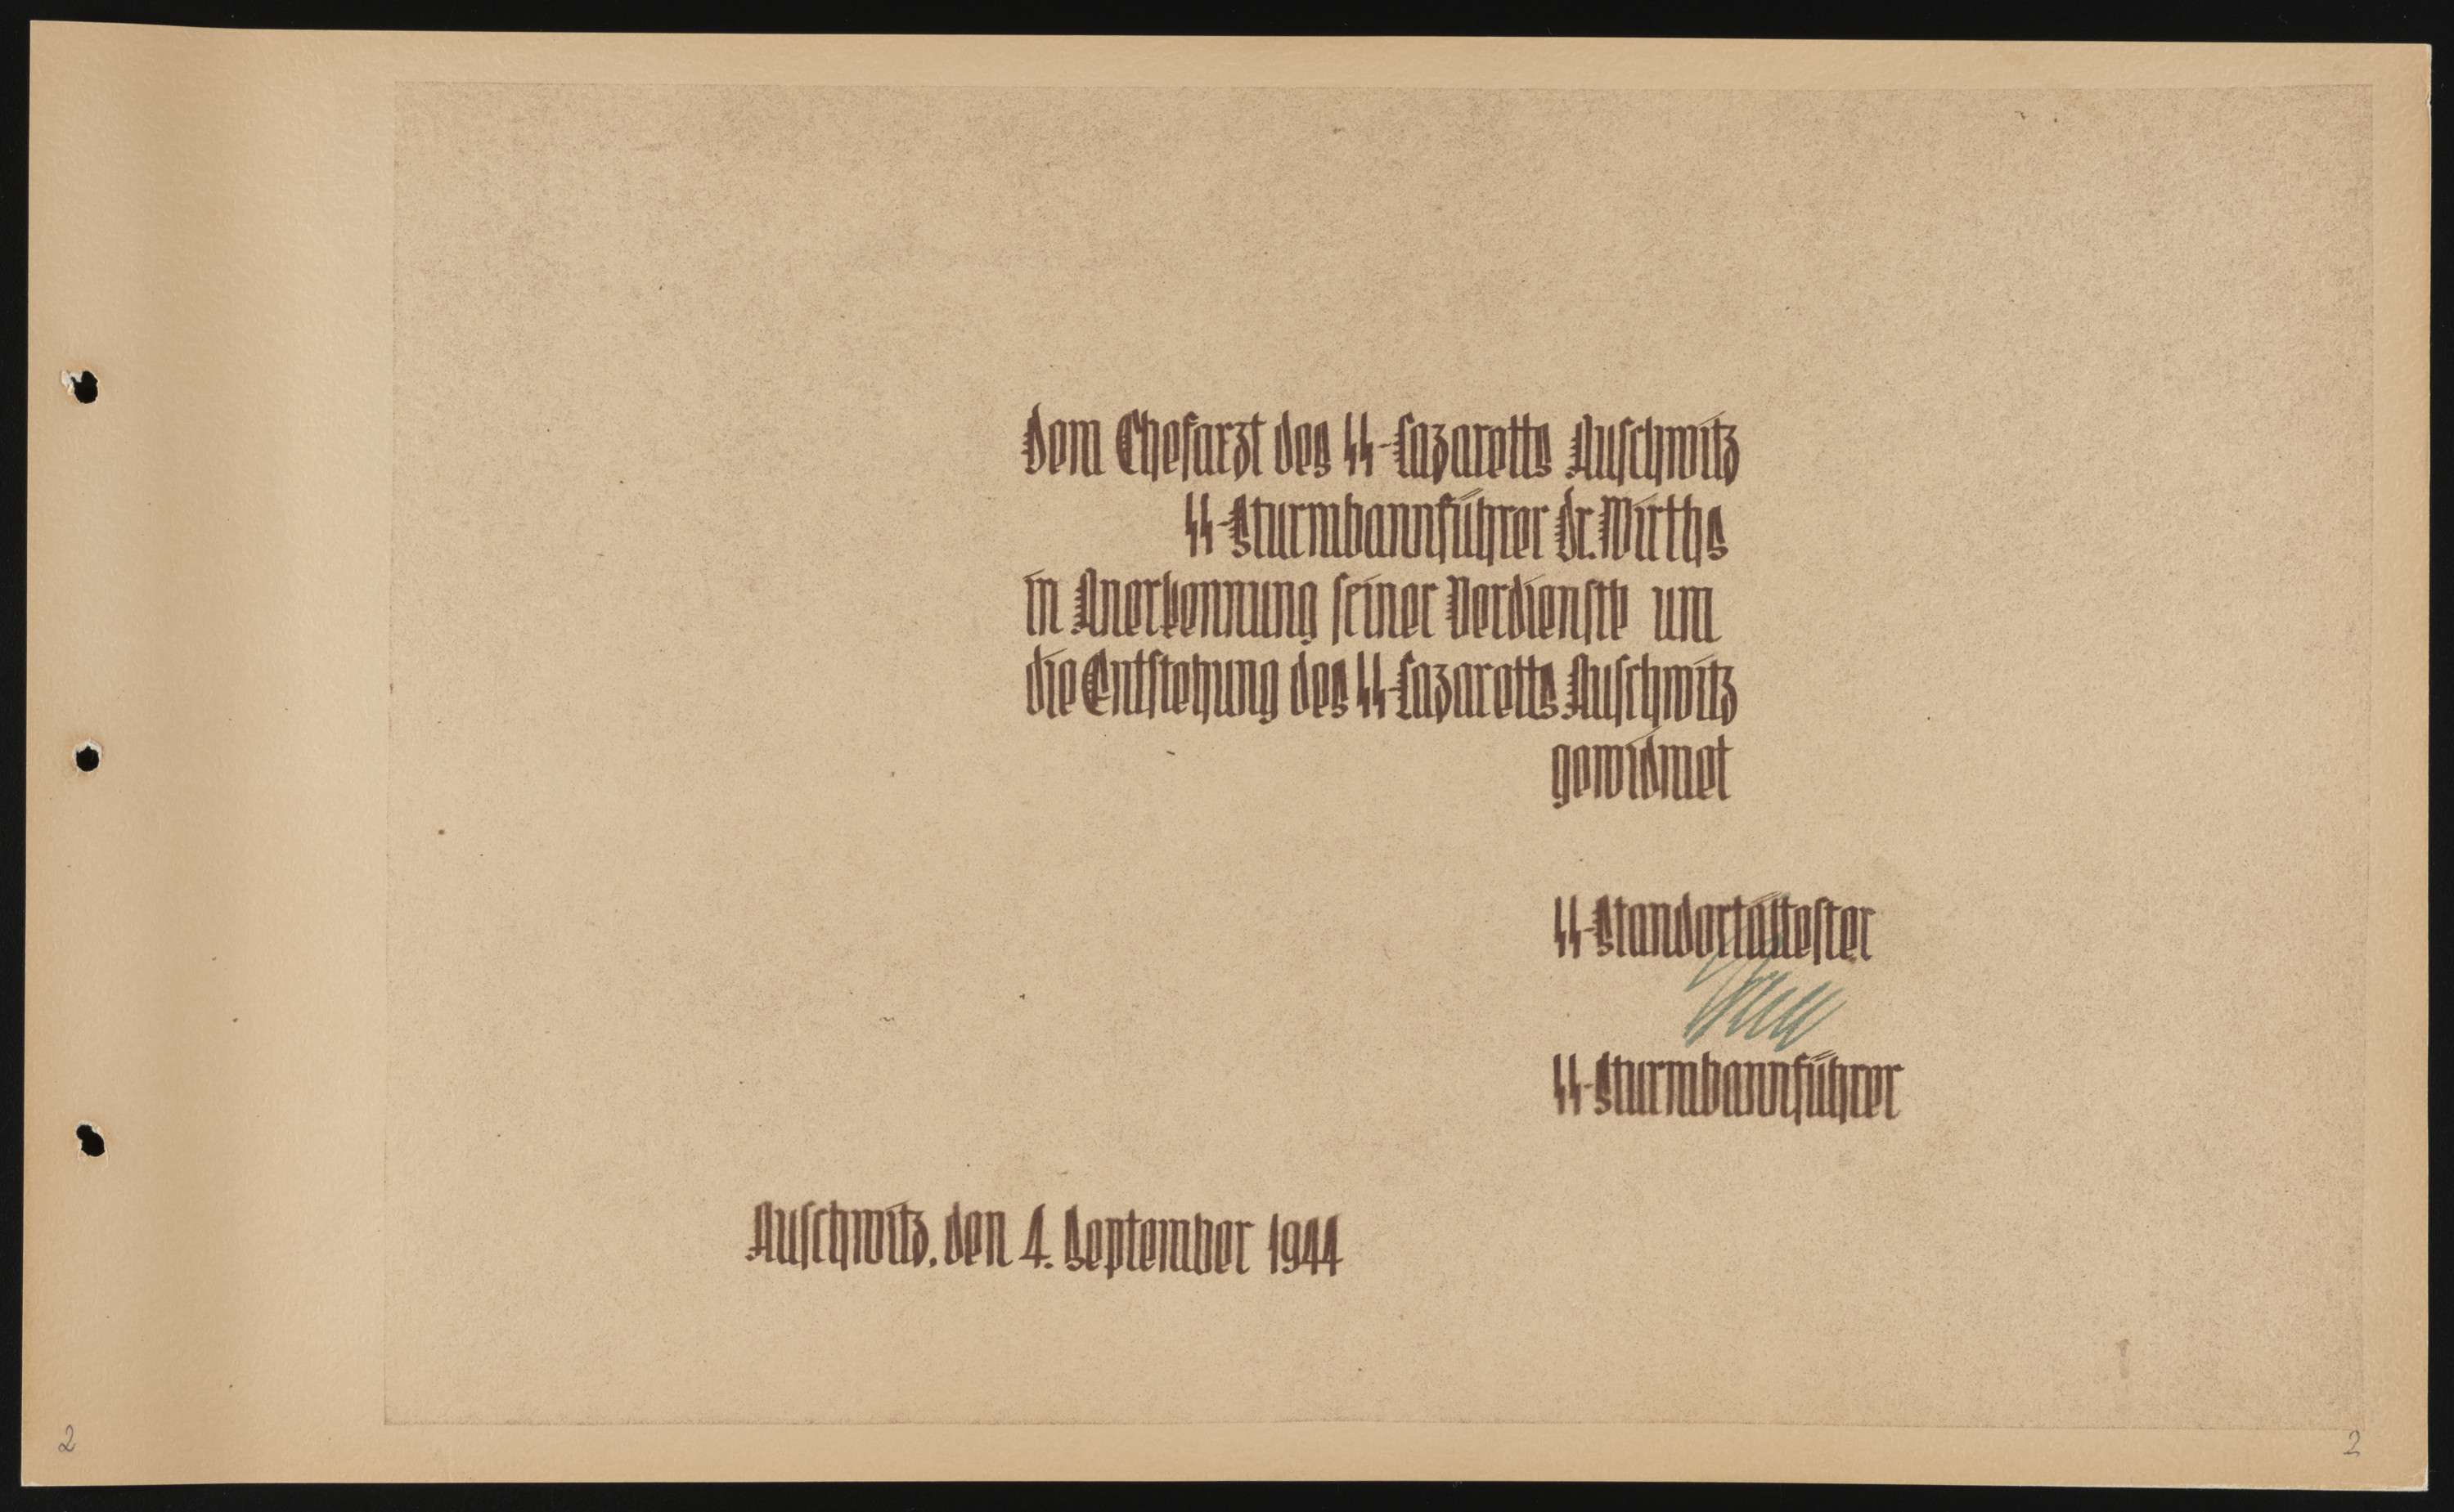 Interior title page of a photo album documenting the creation of the SS Truppenlazarett, the SS troop hospital in Auschwitz and dedication to Dr. Eduard Wirths.